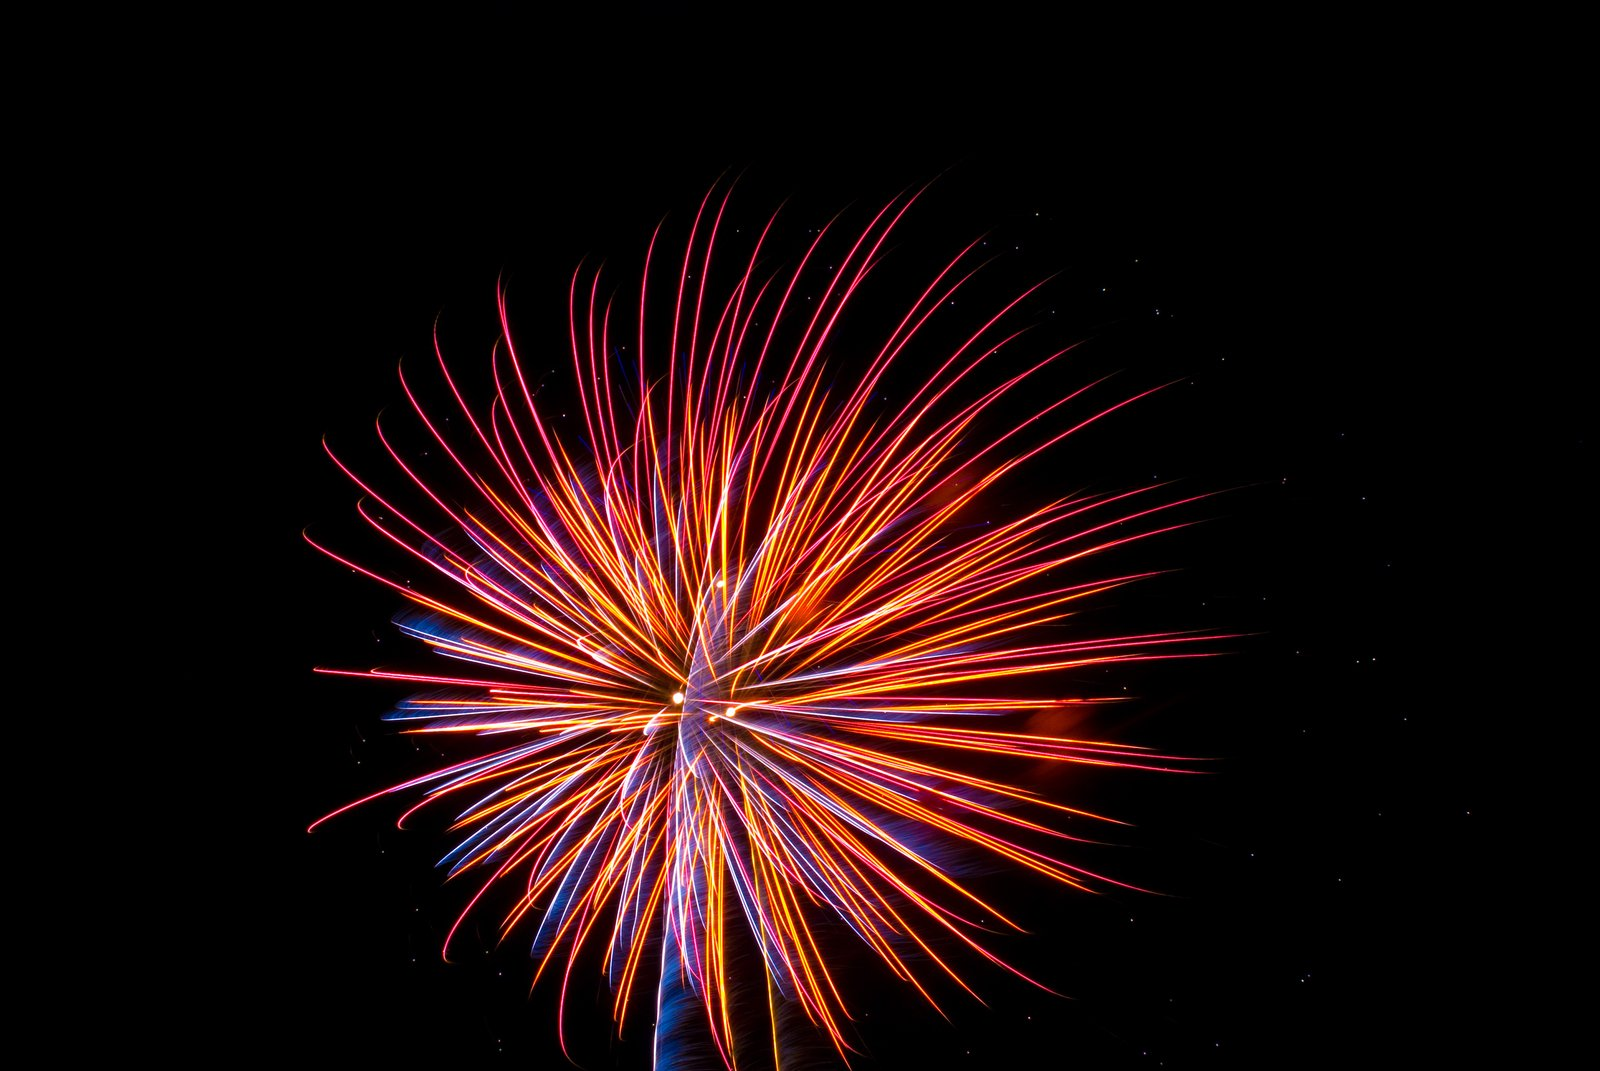 Free Red, White, and Boom 2 Stock Photo - FreeImages.com - photo#49